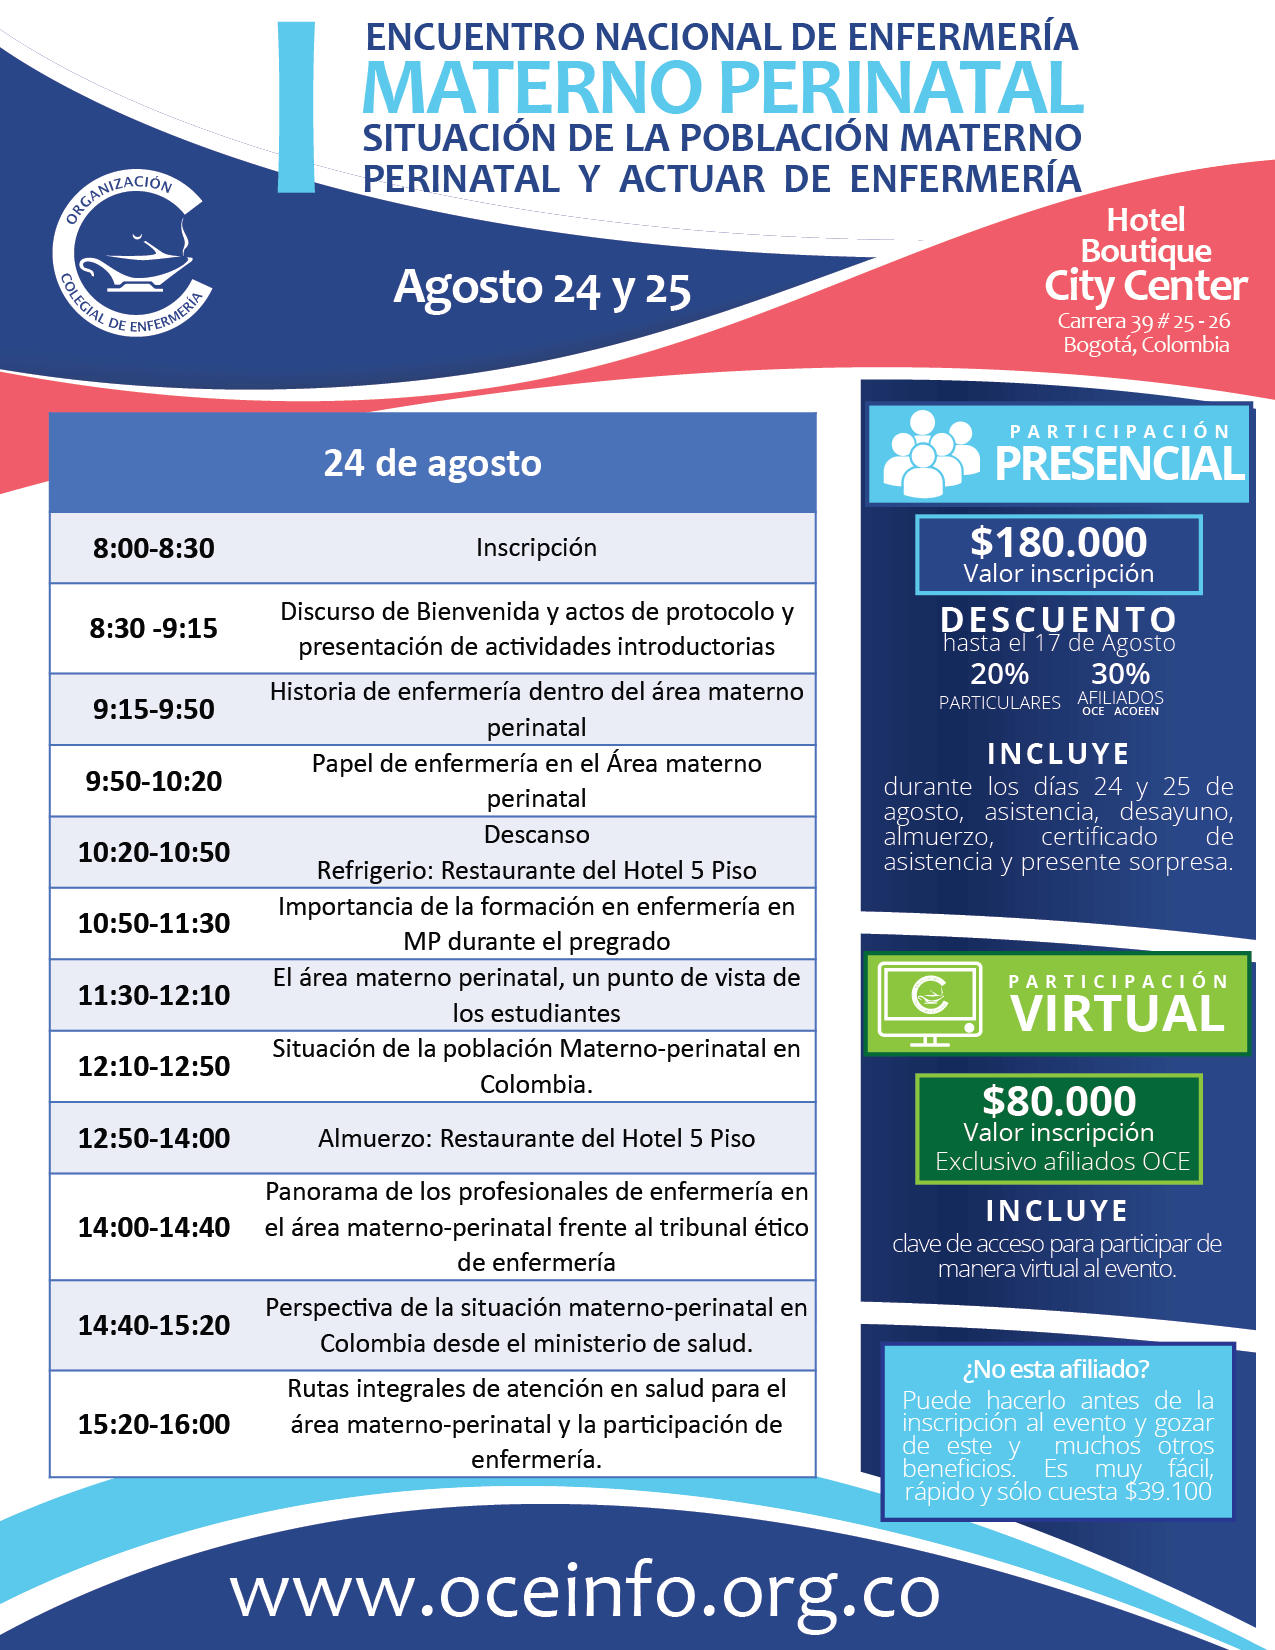 2018 08 03 EVENTO PERINATAL CARTA AGENDA 01